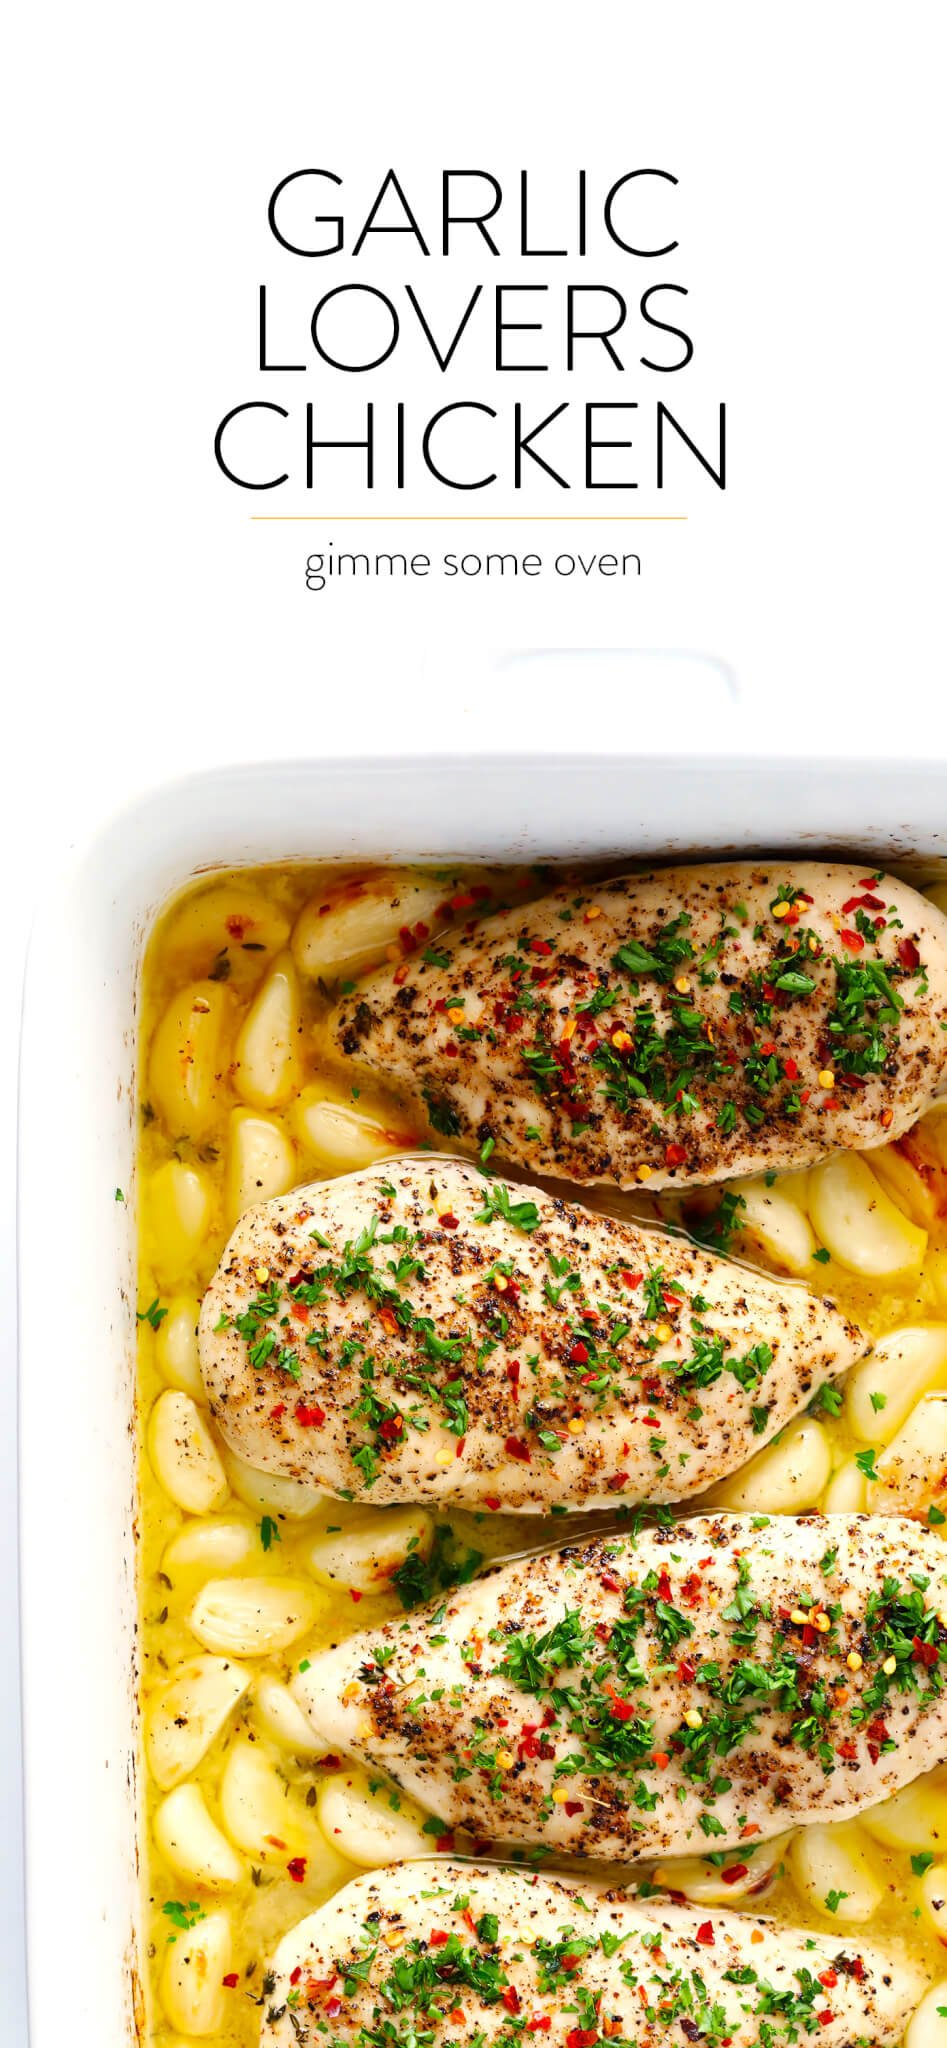 This Garlic Lovers Baked Chicken recipe is quick and easy to prepare, it's baked in the oven with a delicious lemon-butter sauce, and it's made with 40 cloves of garlic that are roasted to perfection. It's also naturally gluten-free, and SO delicious. An awesome weeknight dinner idea!